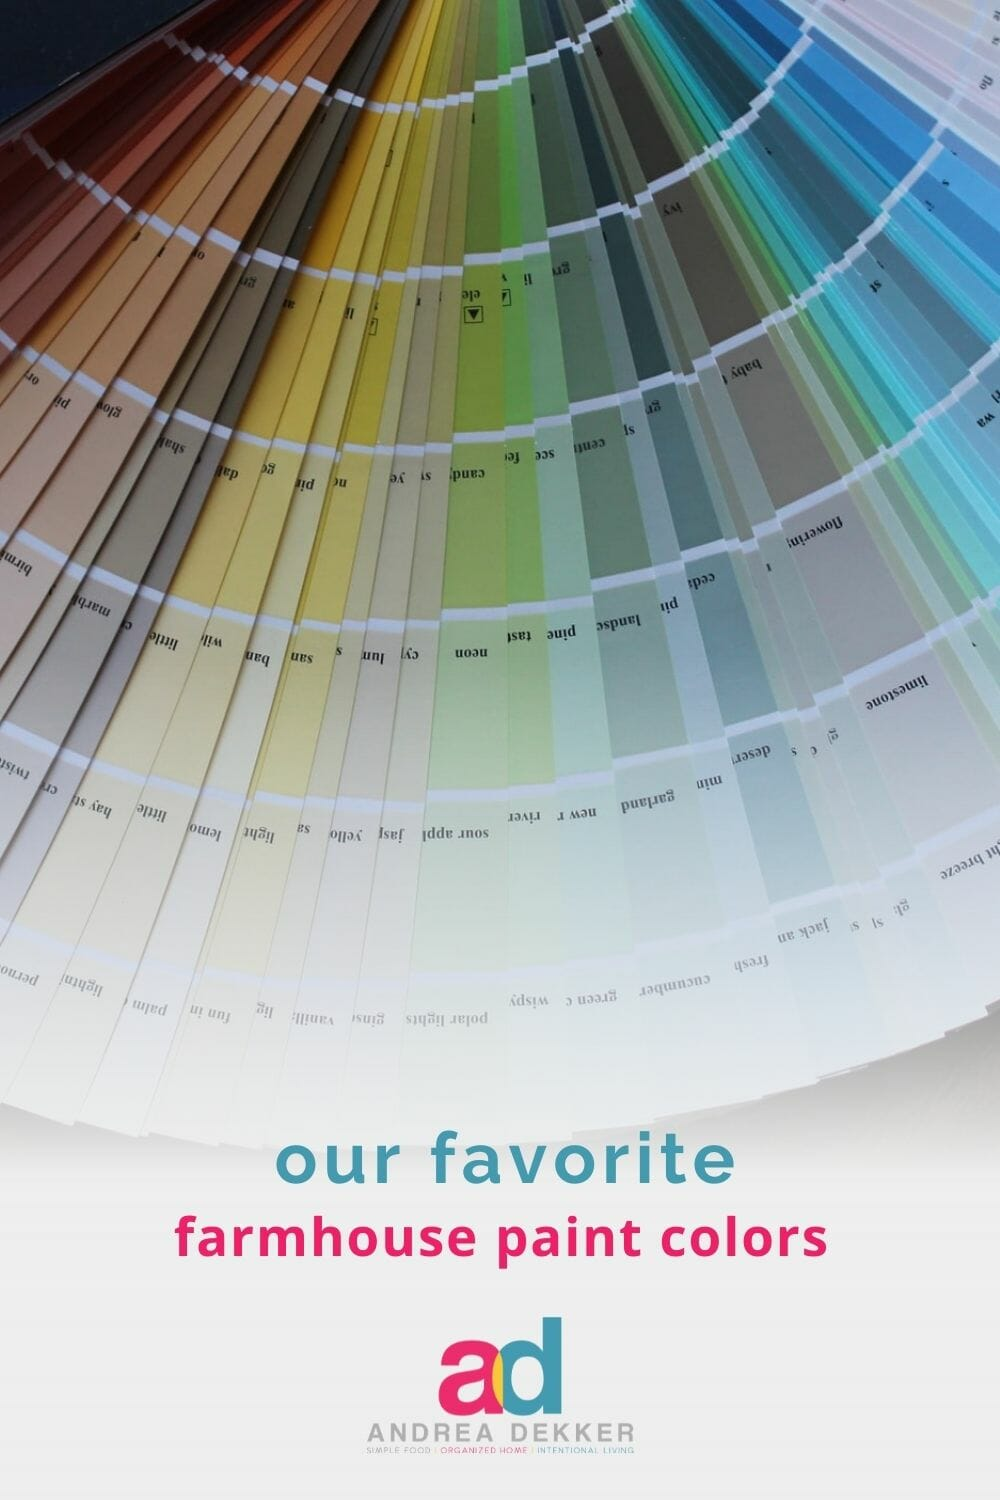 Give your home a farmhouse facelift with our favorite farmhouse paint colors -- it's one of the quickest and least expensive ways to update your home! via @andreadekker